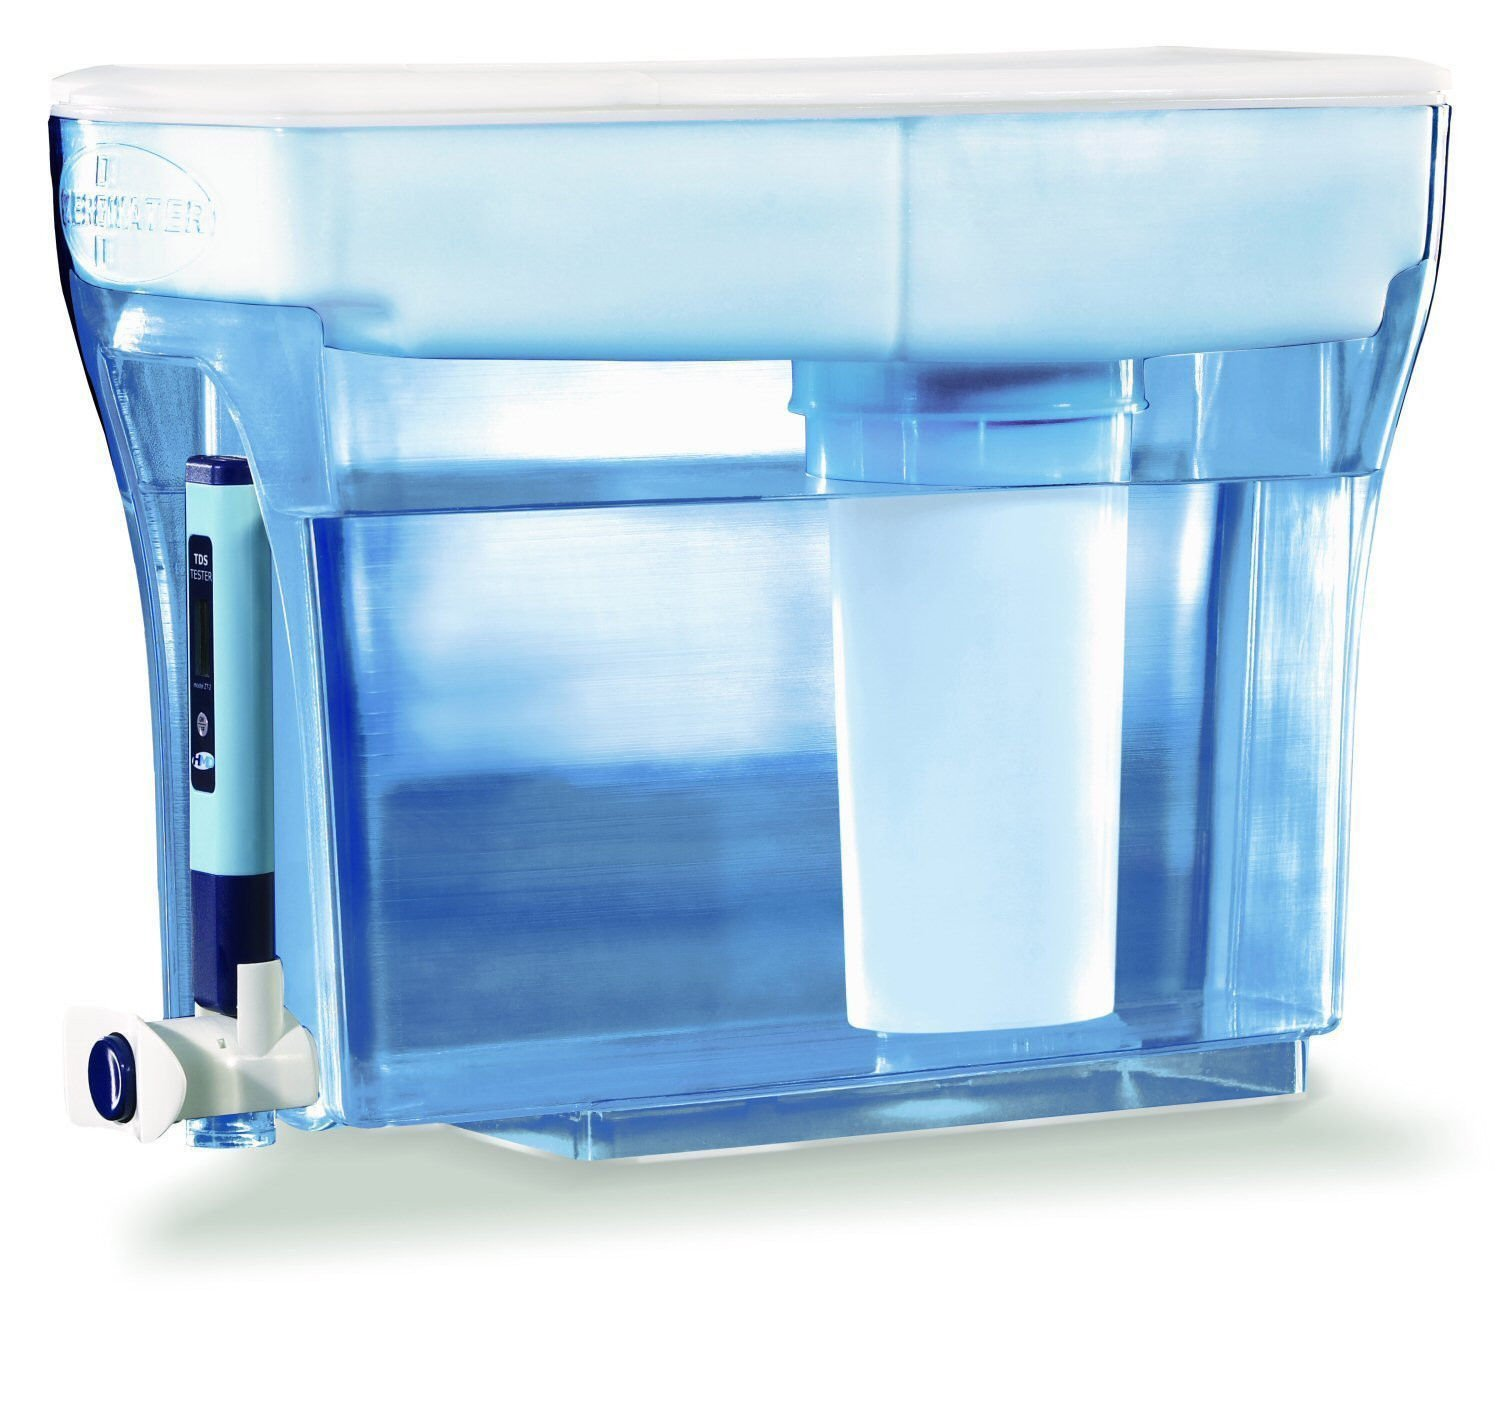 ZeroWater 23-Cup Water Dispenser and Filtration System NEW